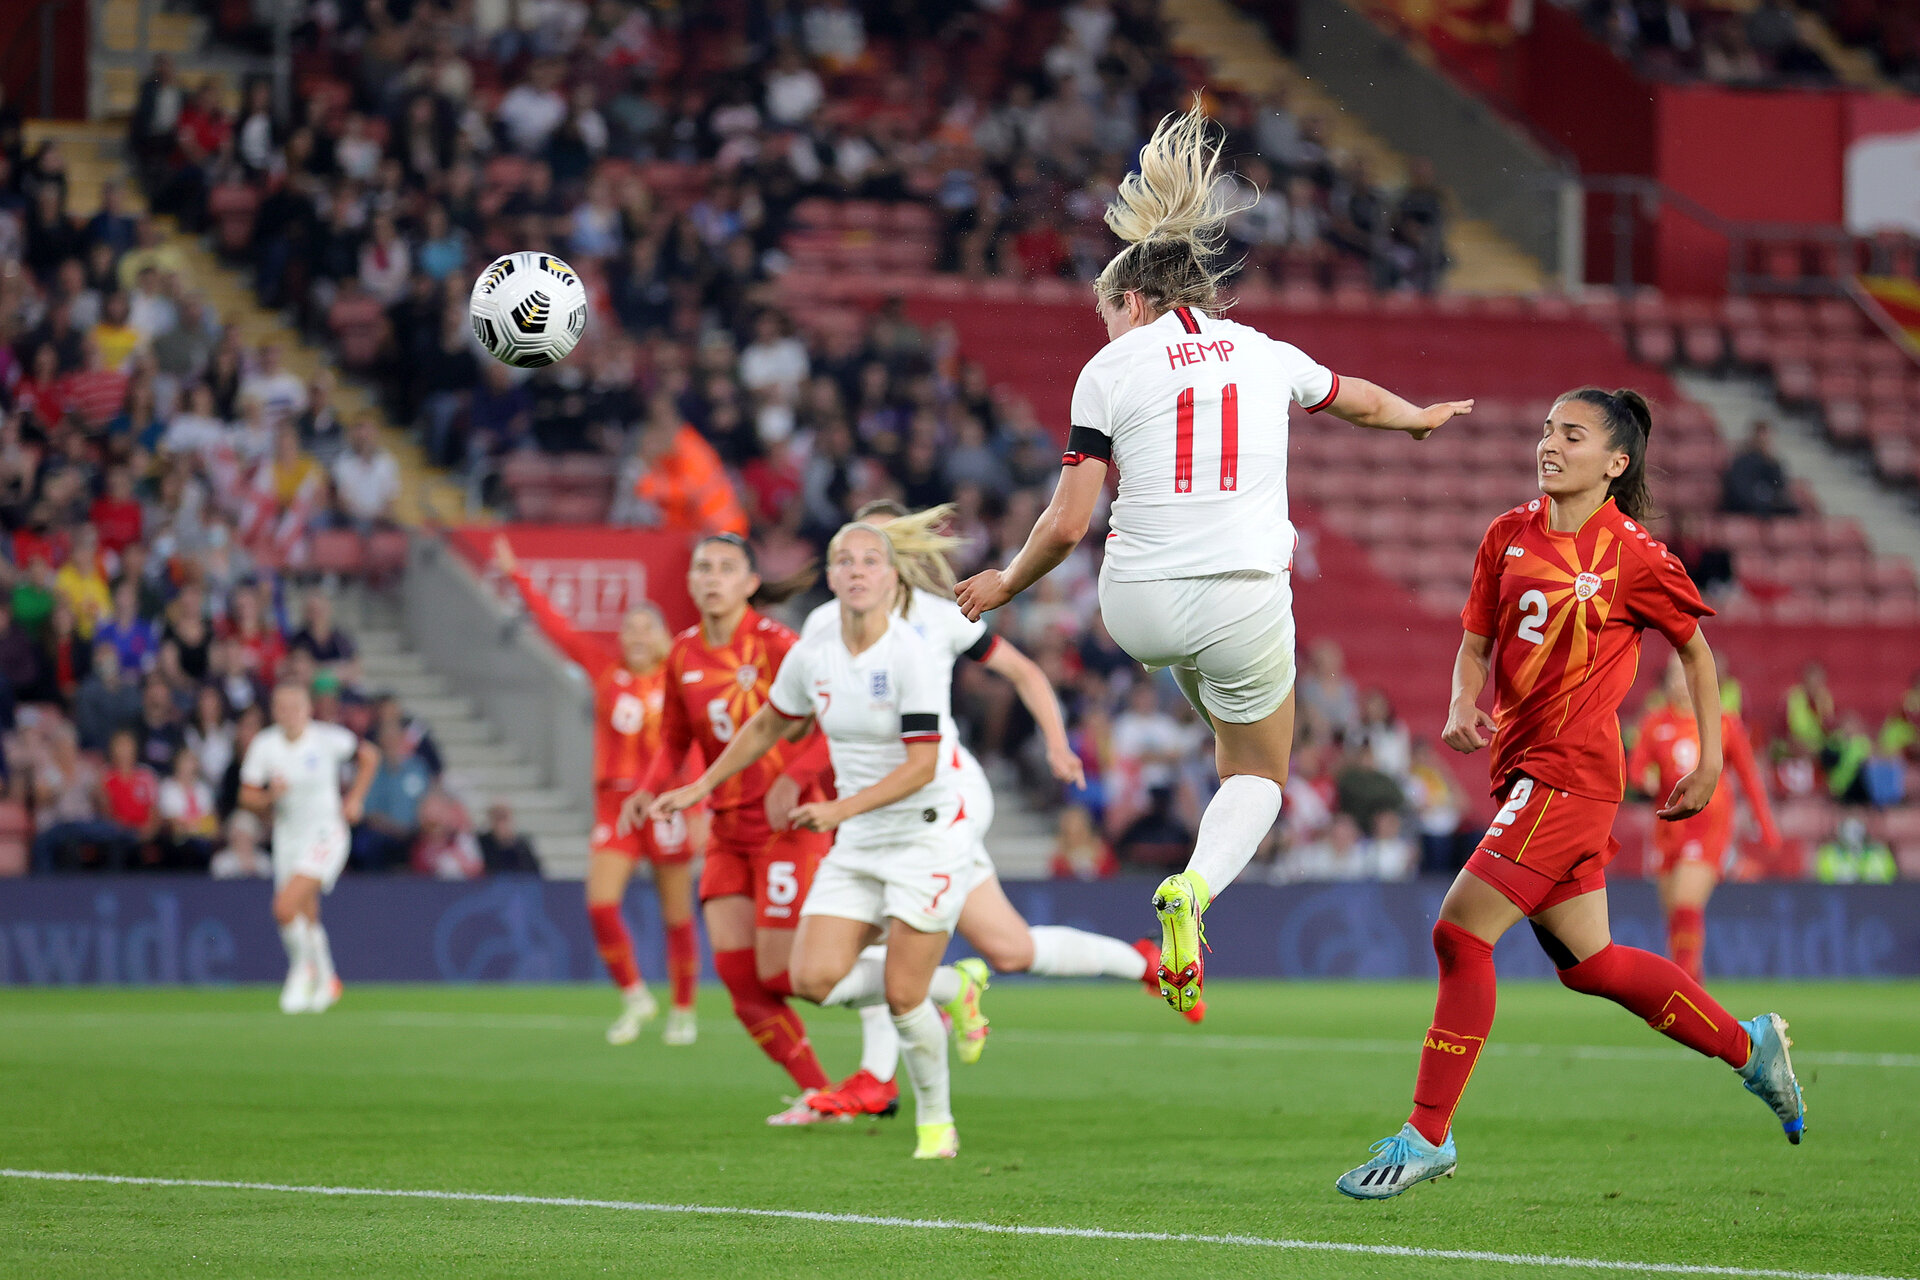 SOUTHAMPTON, ENGLAND - SEPTEMBER 17: during  at St Mary's Stadium on September 17, 2021 in Southampton, England. (Photo by Isabelle Field/Southampton FC via Getty Images)